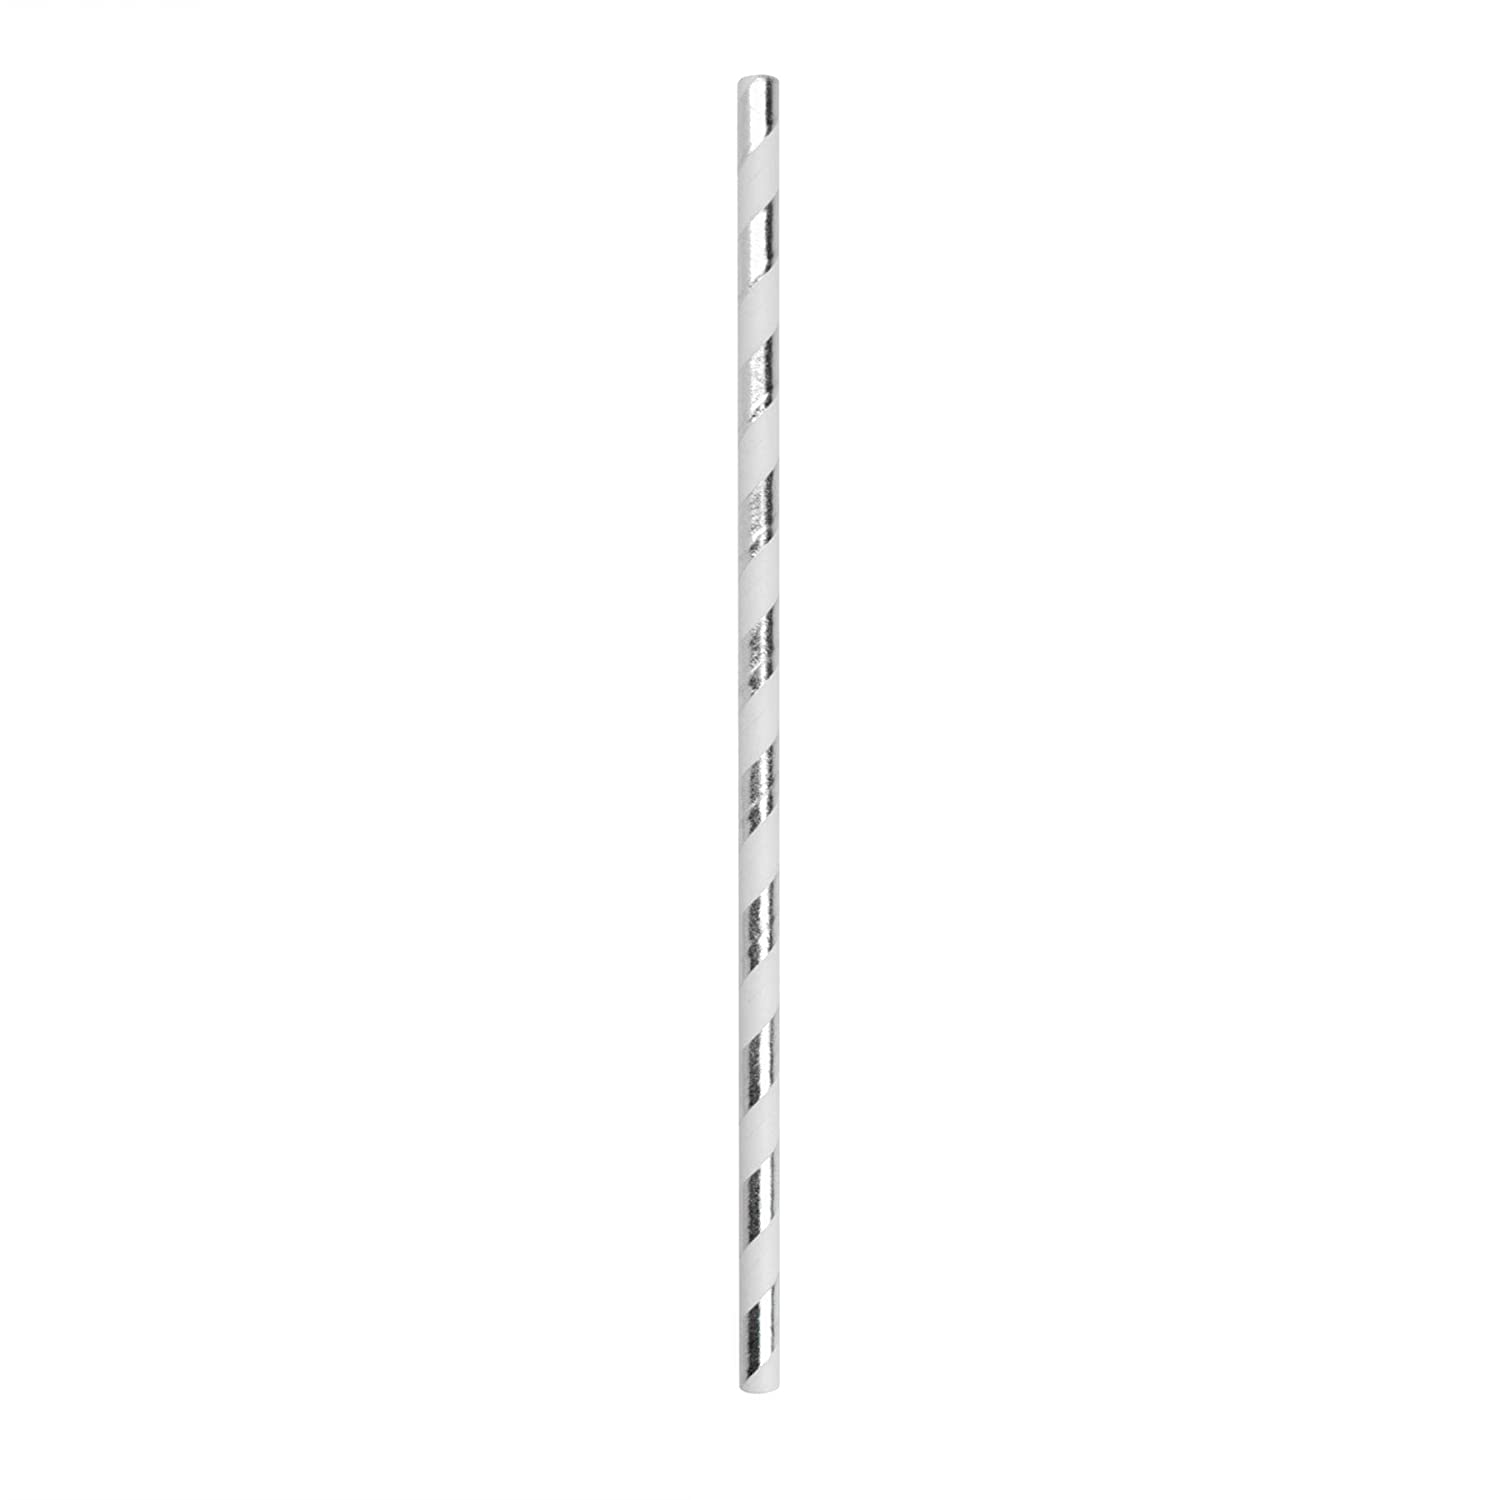 Rink Drink Biodegradable Paper Drinking Straws Environmentally Friendly Party Wedding Celebration Pack of 100 Silver and White